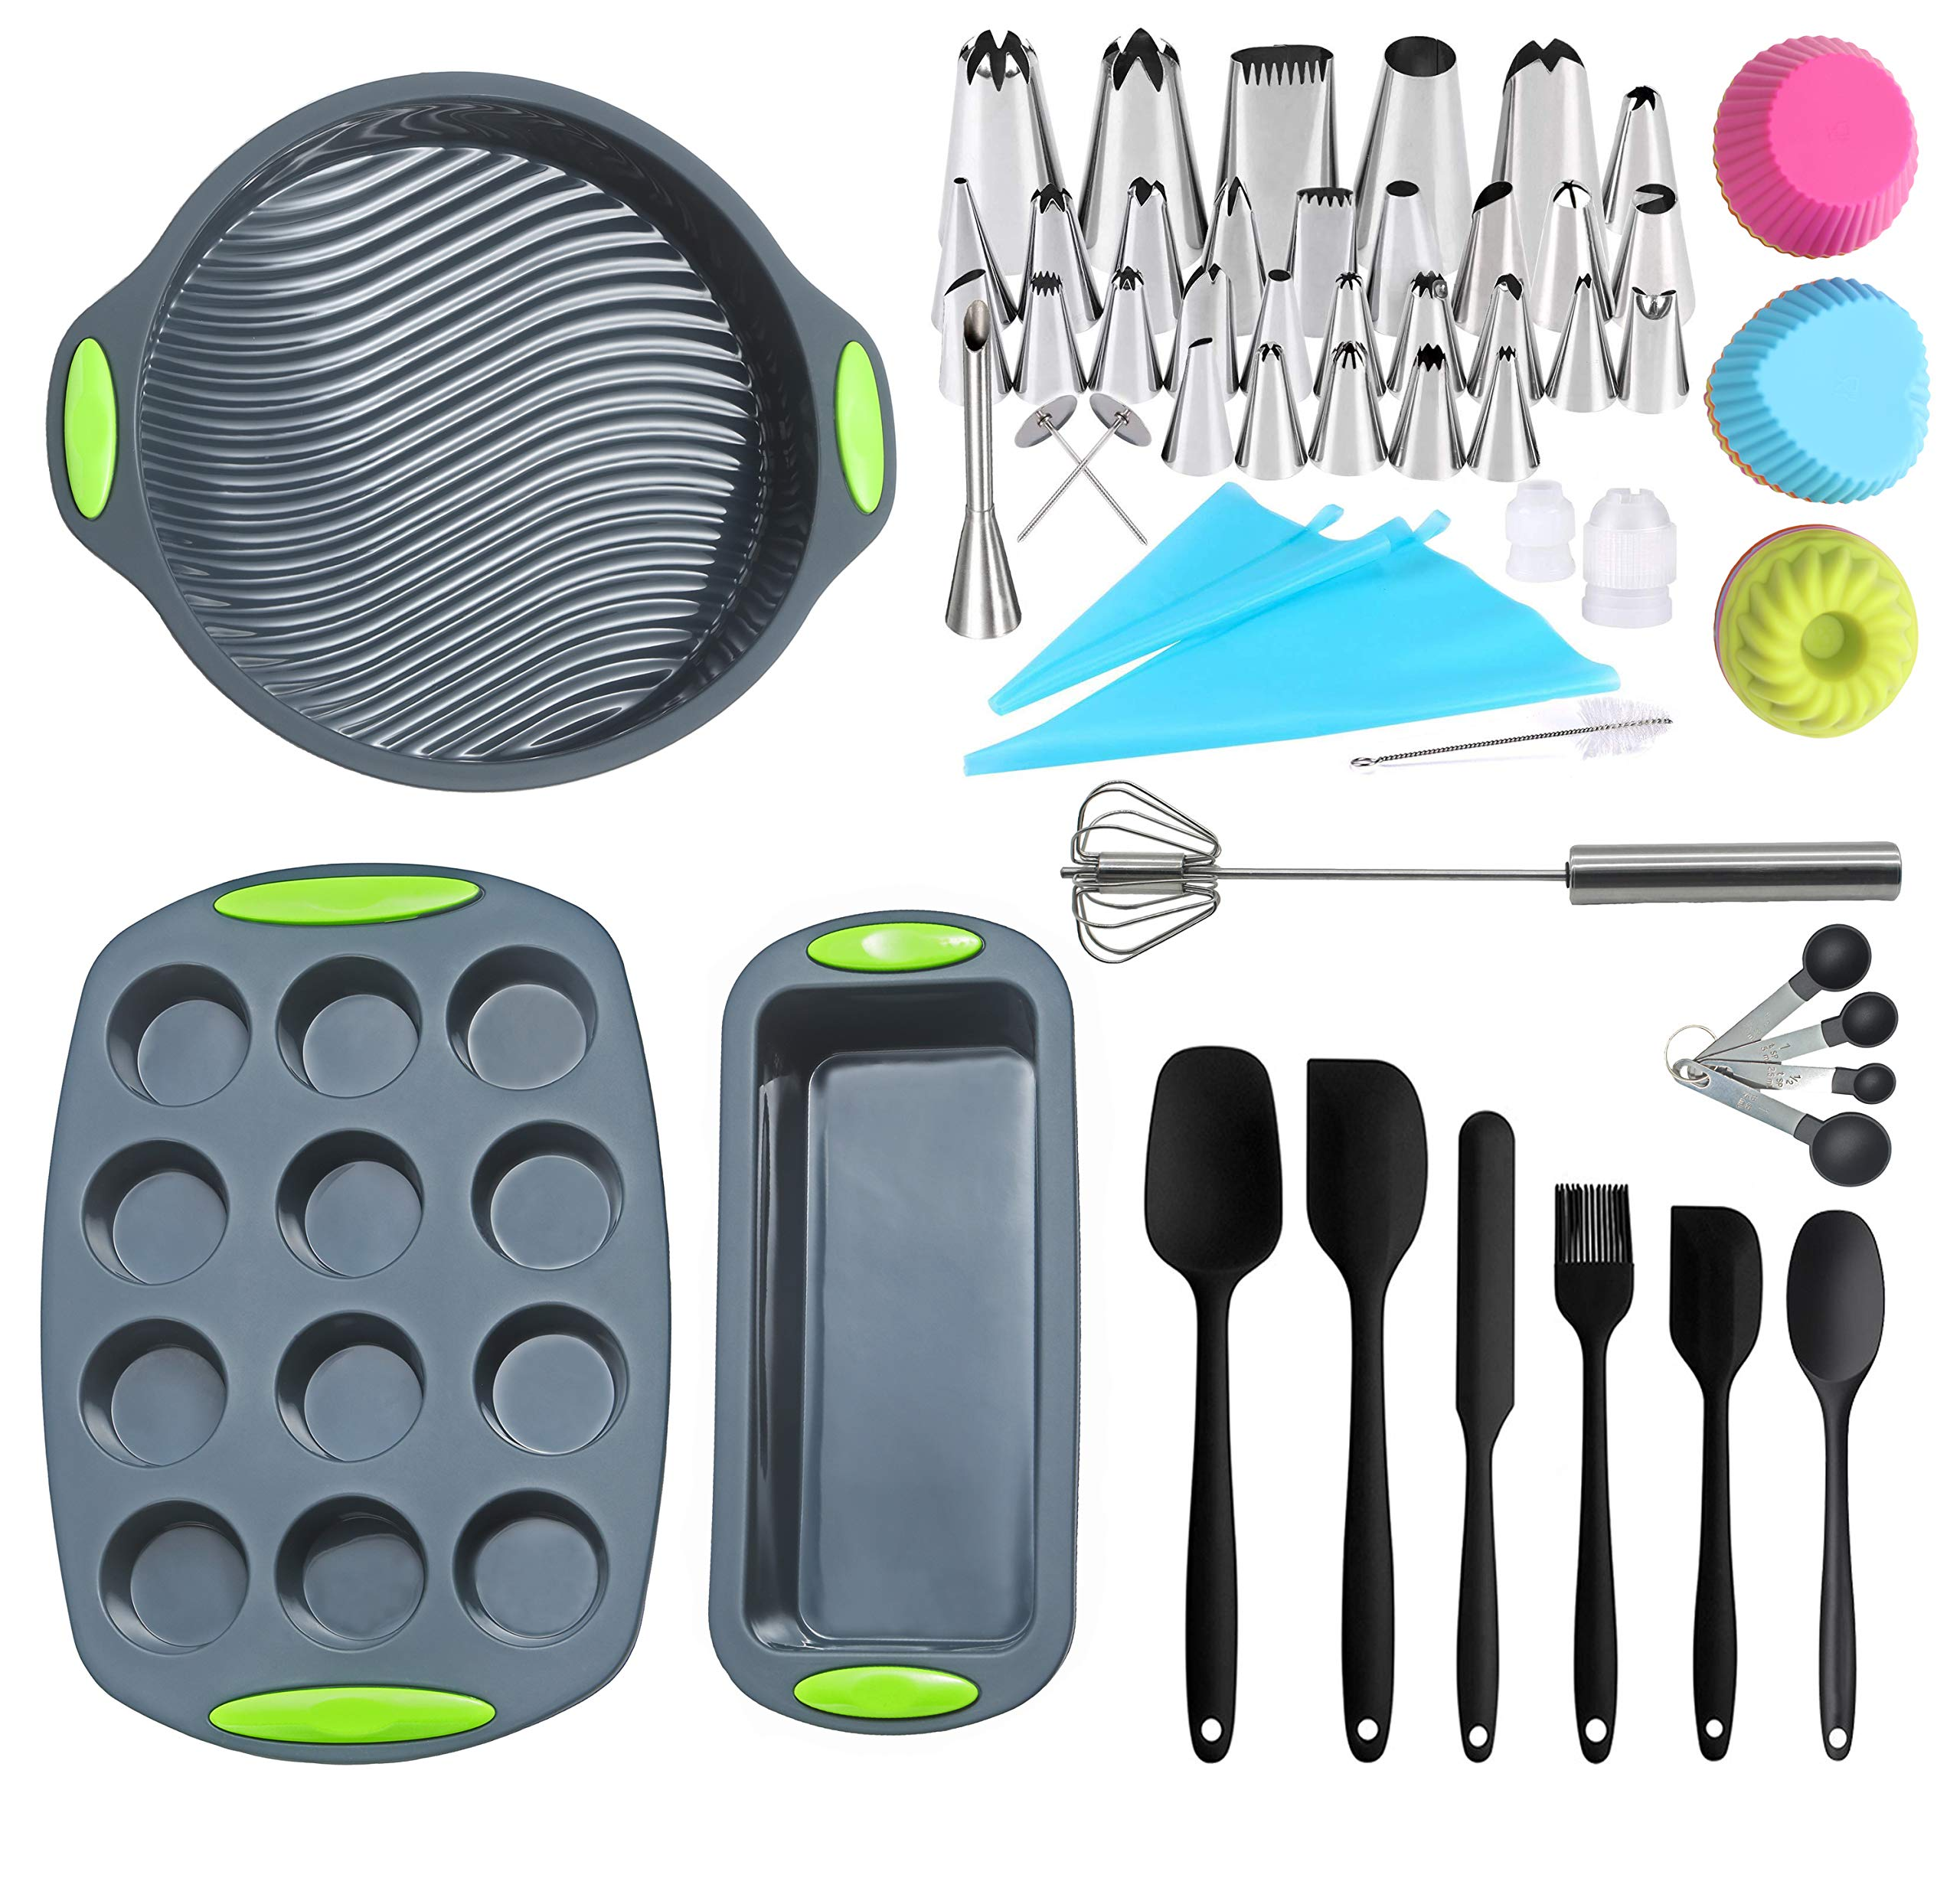 62 Pieces Silicone Bakeware Set, Food Grade Baking Pans Nonstick, Round Cake Pan, Loaf Bread Pan, Mini Muffin Pan, Cupcake Silicone Mold, Piping Bags and Tips Kit Cake Decorating Supplies Baking Set by megrocle